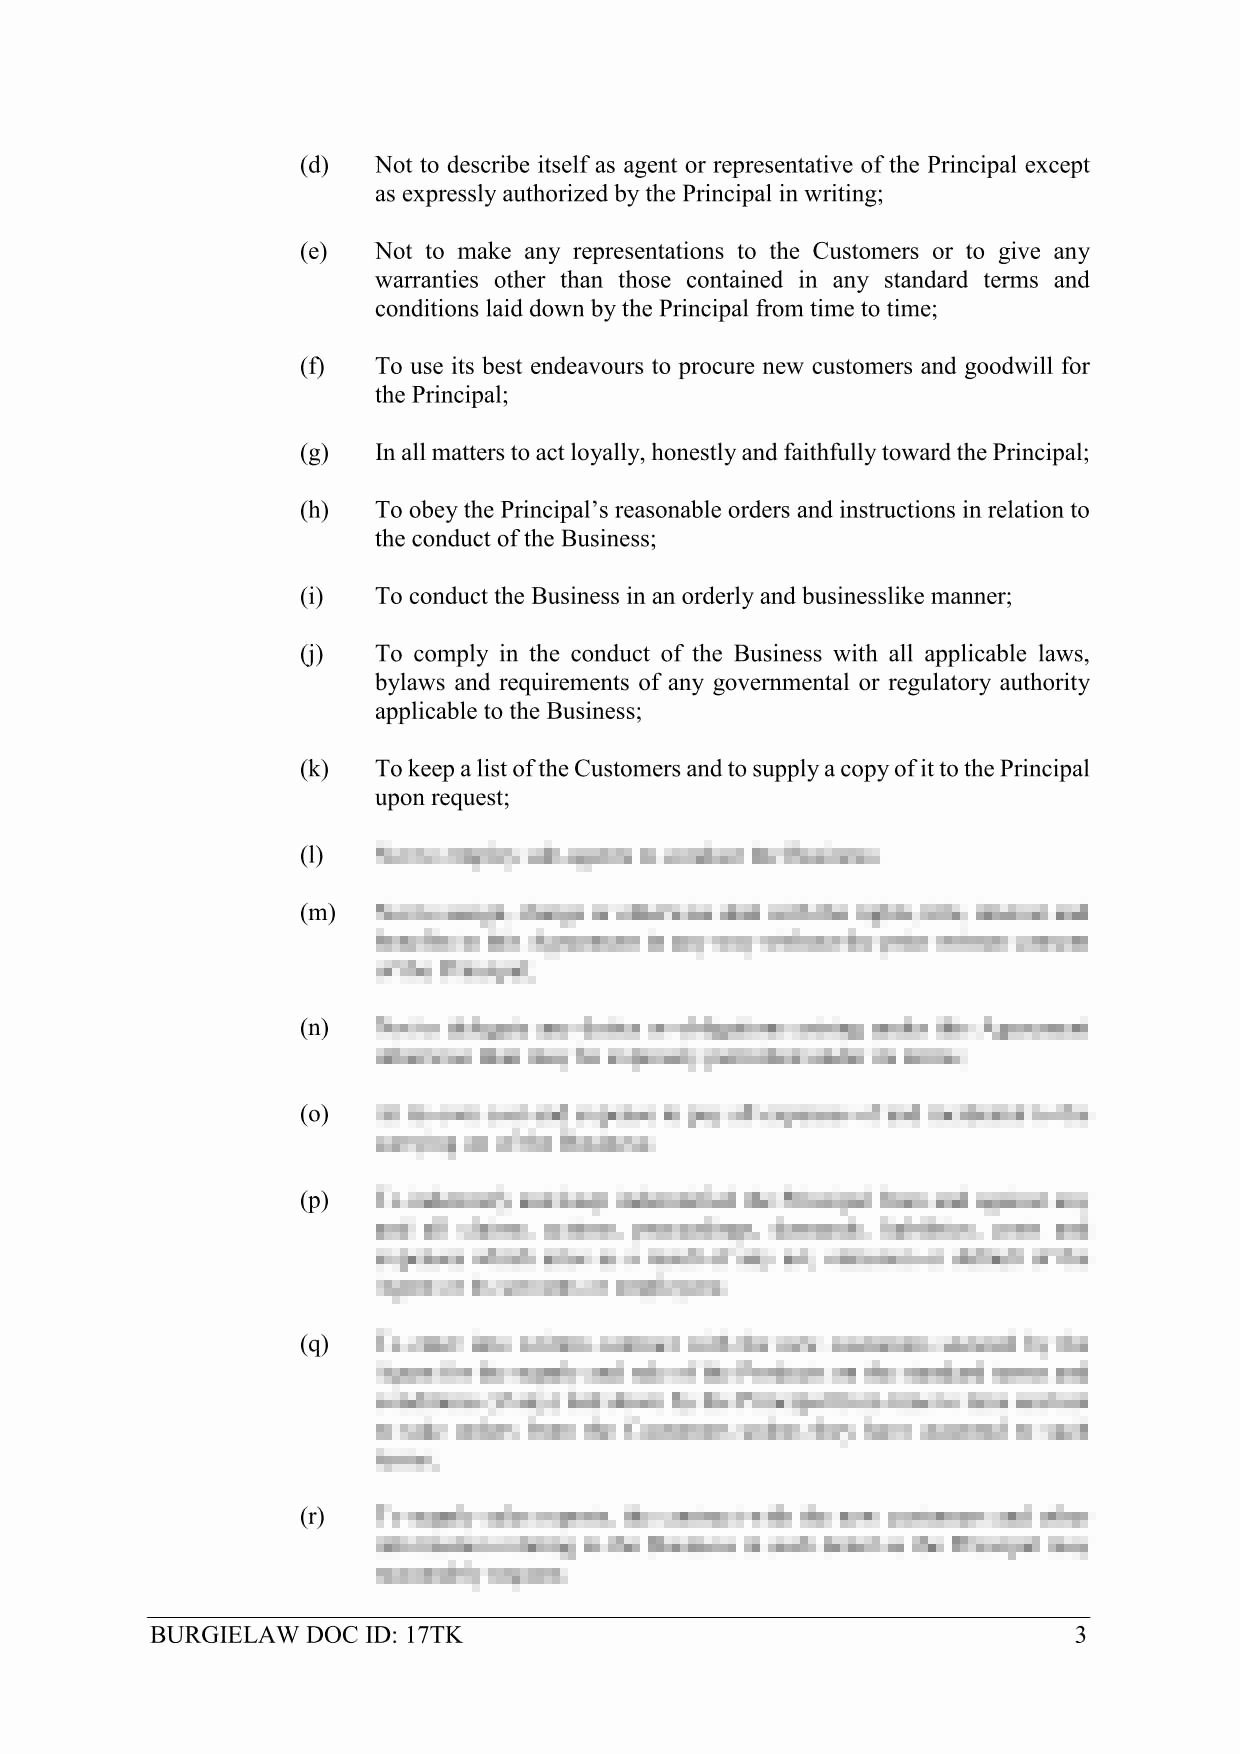 Marketing Agency Agreement Template New Non Exclusive Marketing Agency Agreement Template Burgielaw